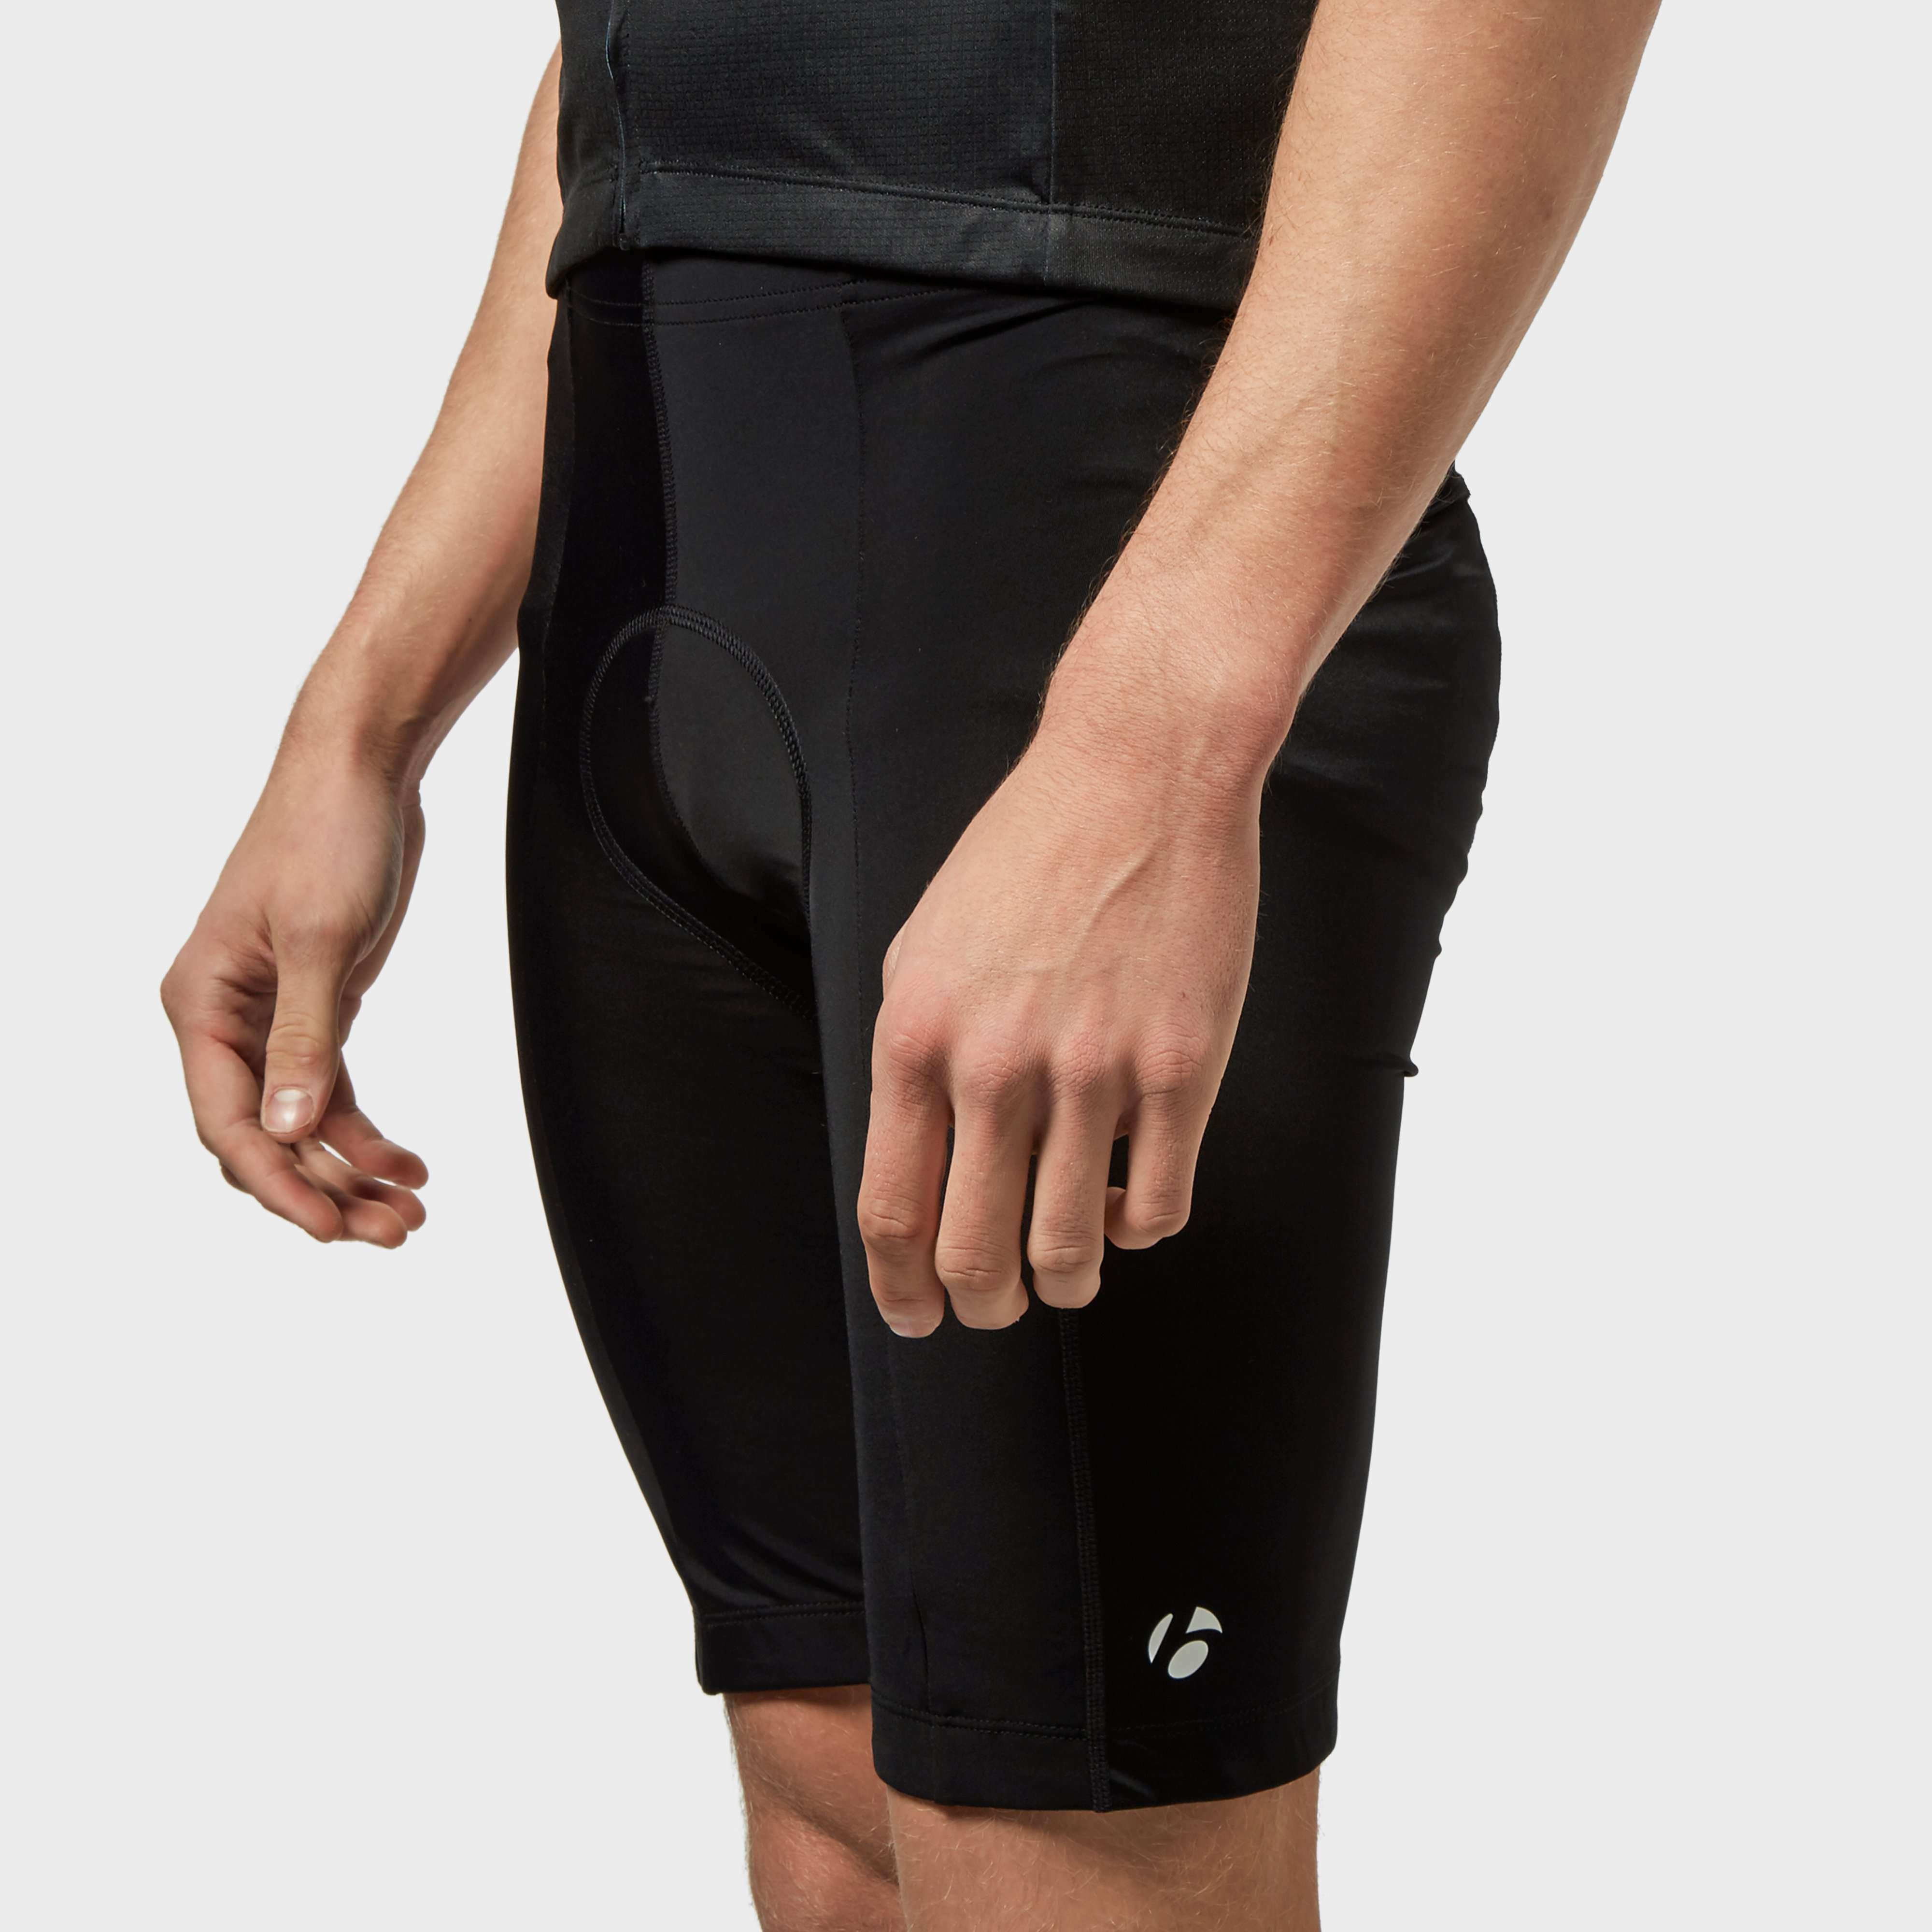 BONTRAGER Men's Solstice Cycling Shorts